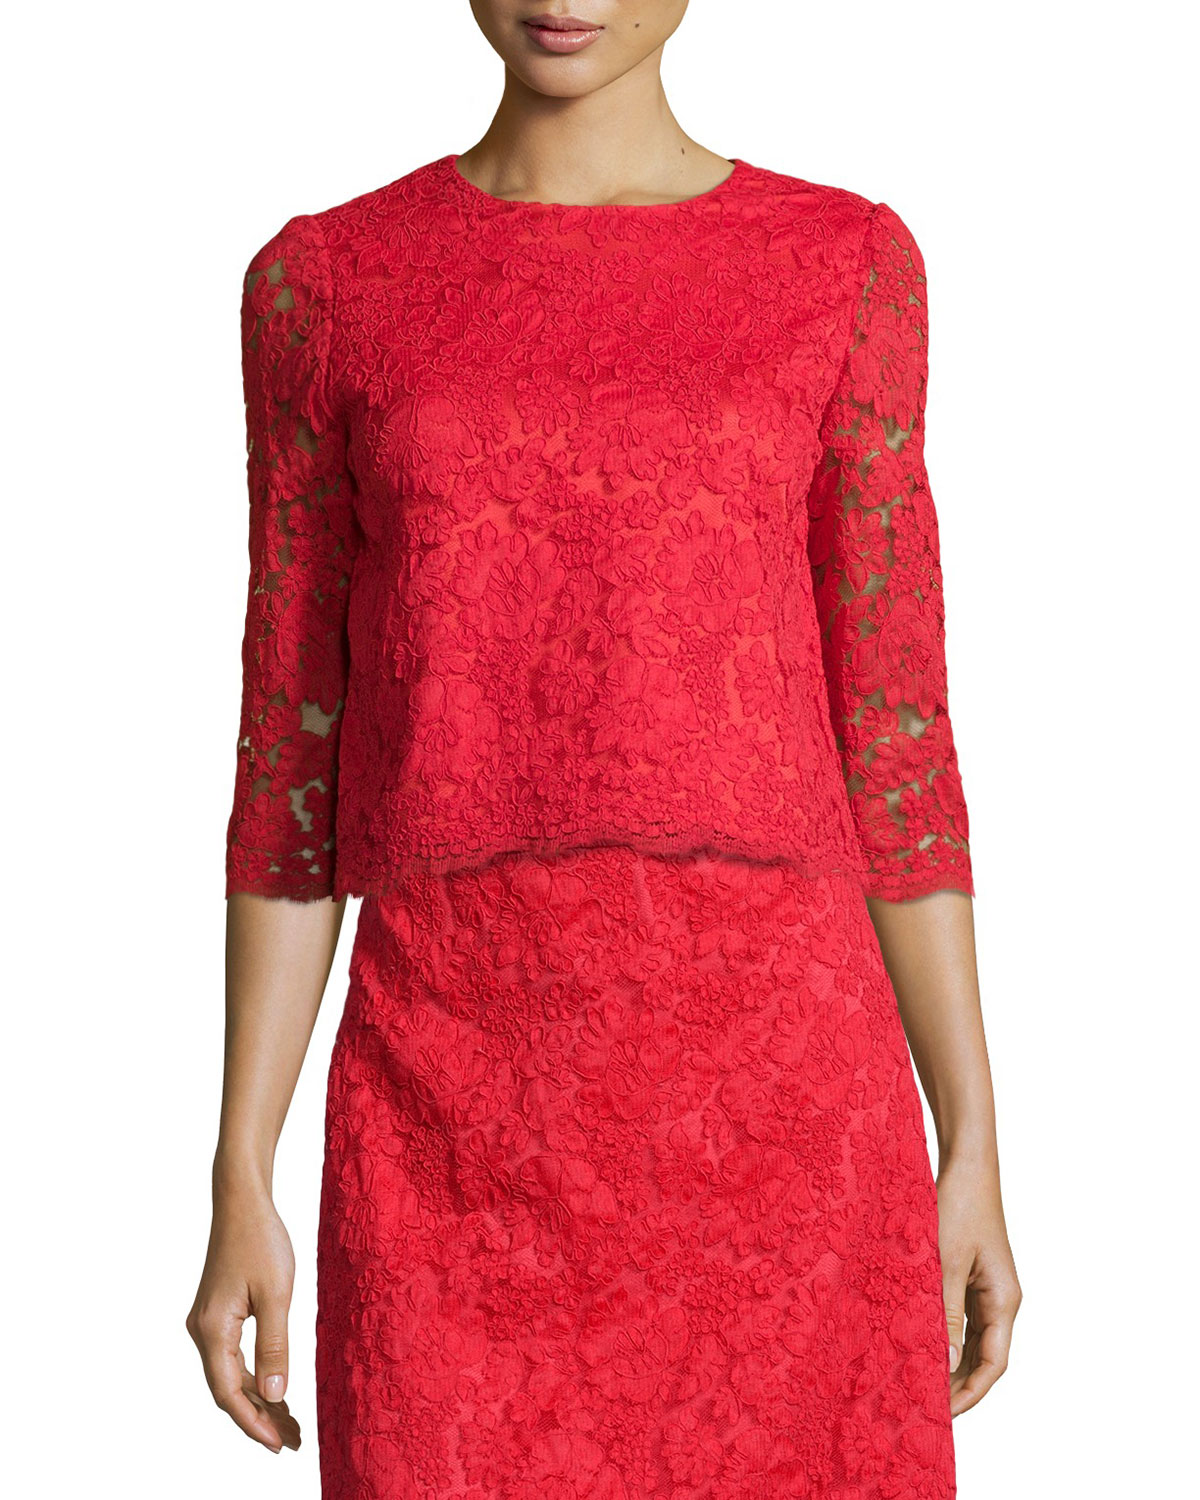 3/4-sleeve floral lace crop top, LOLLIPOP RED - kate spade new york